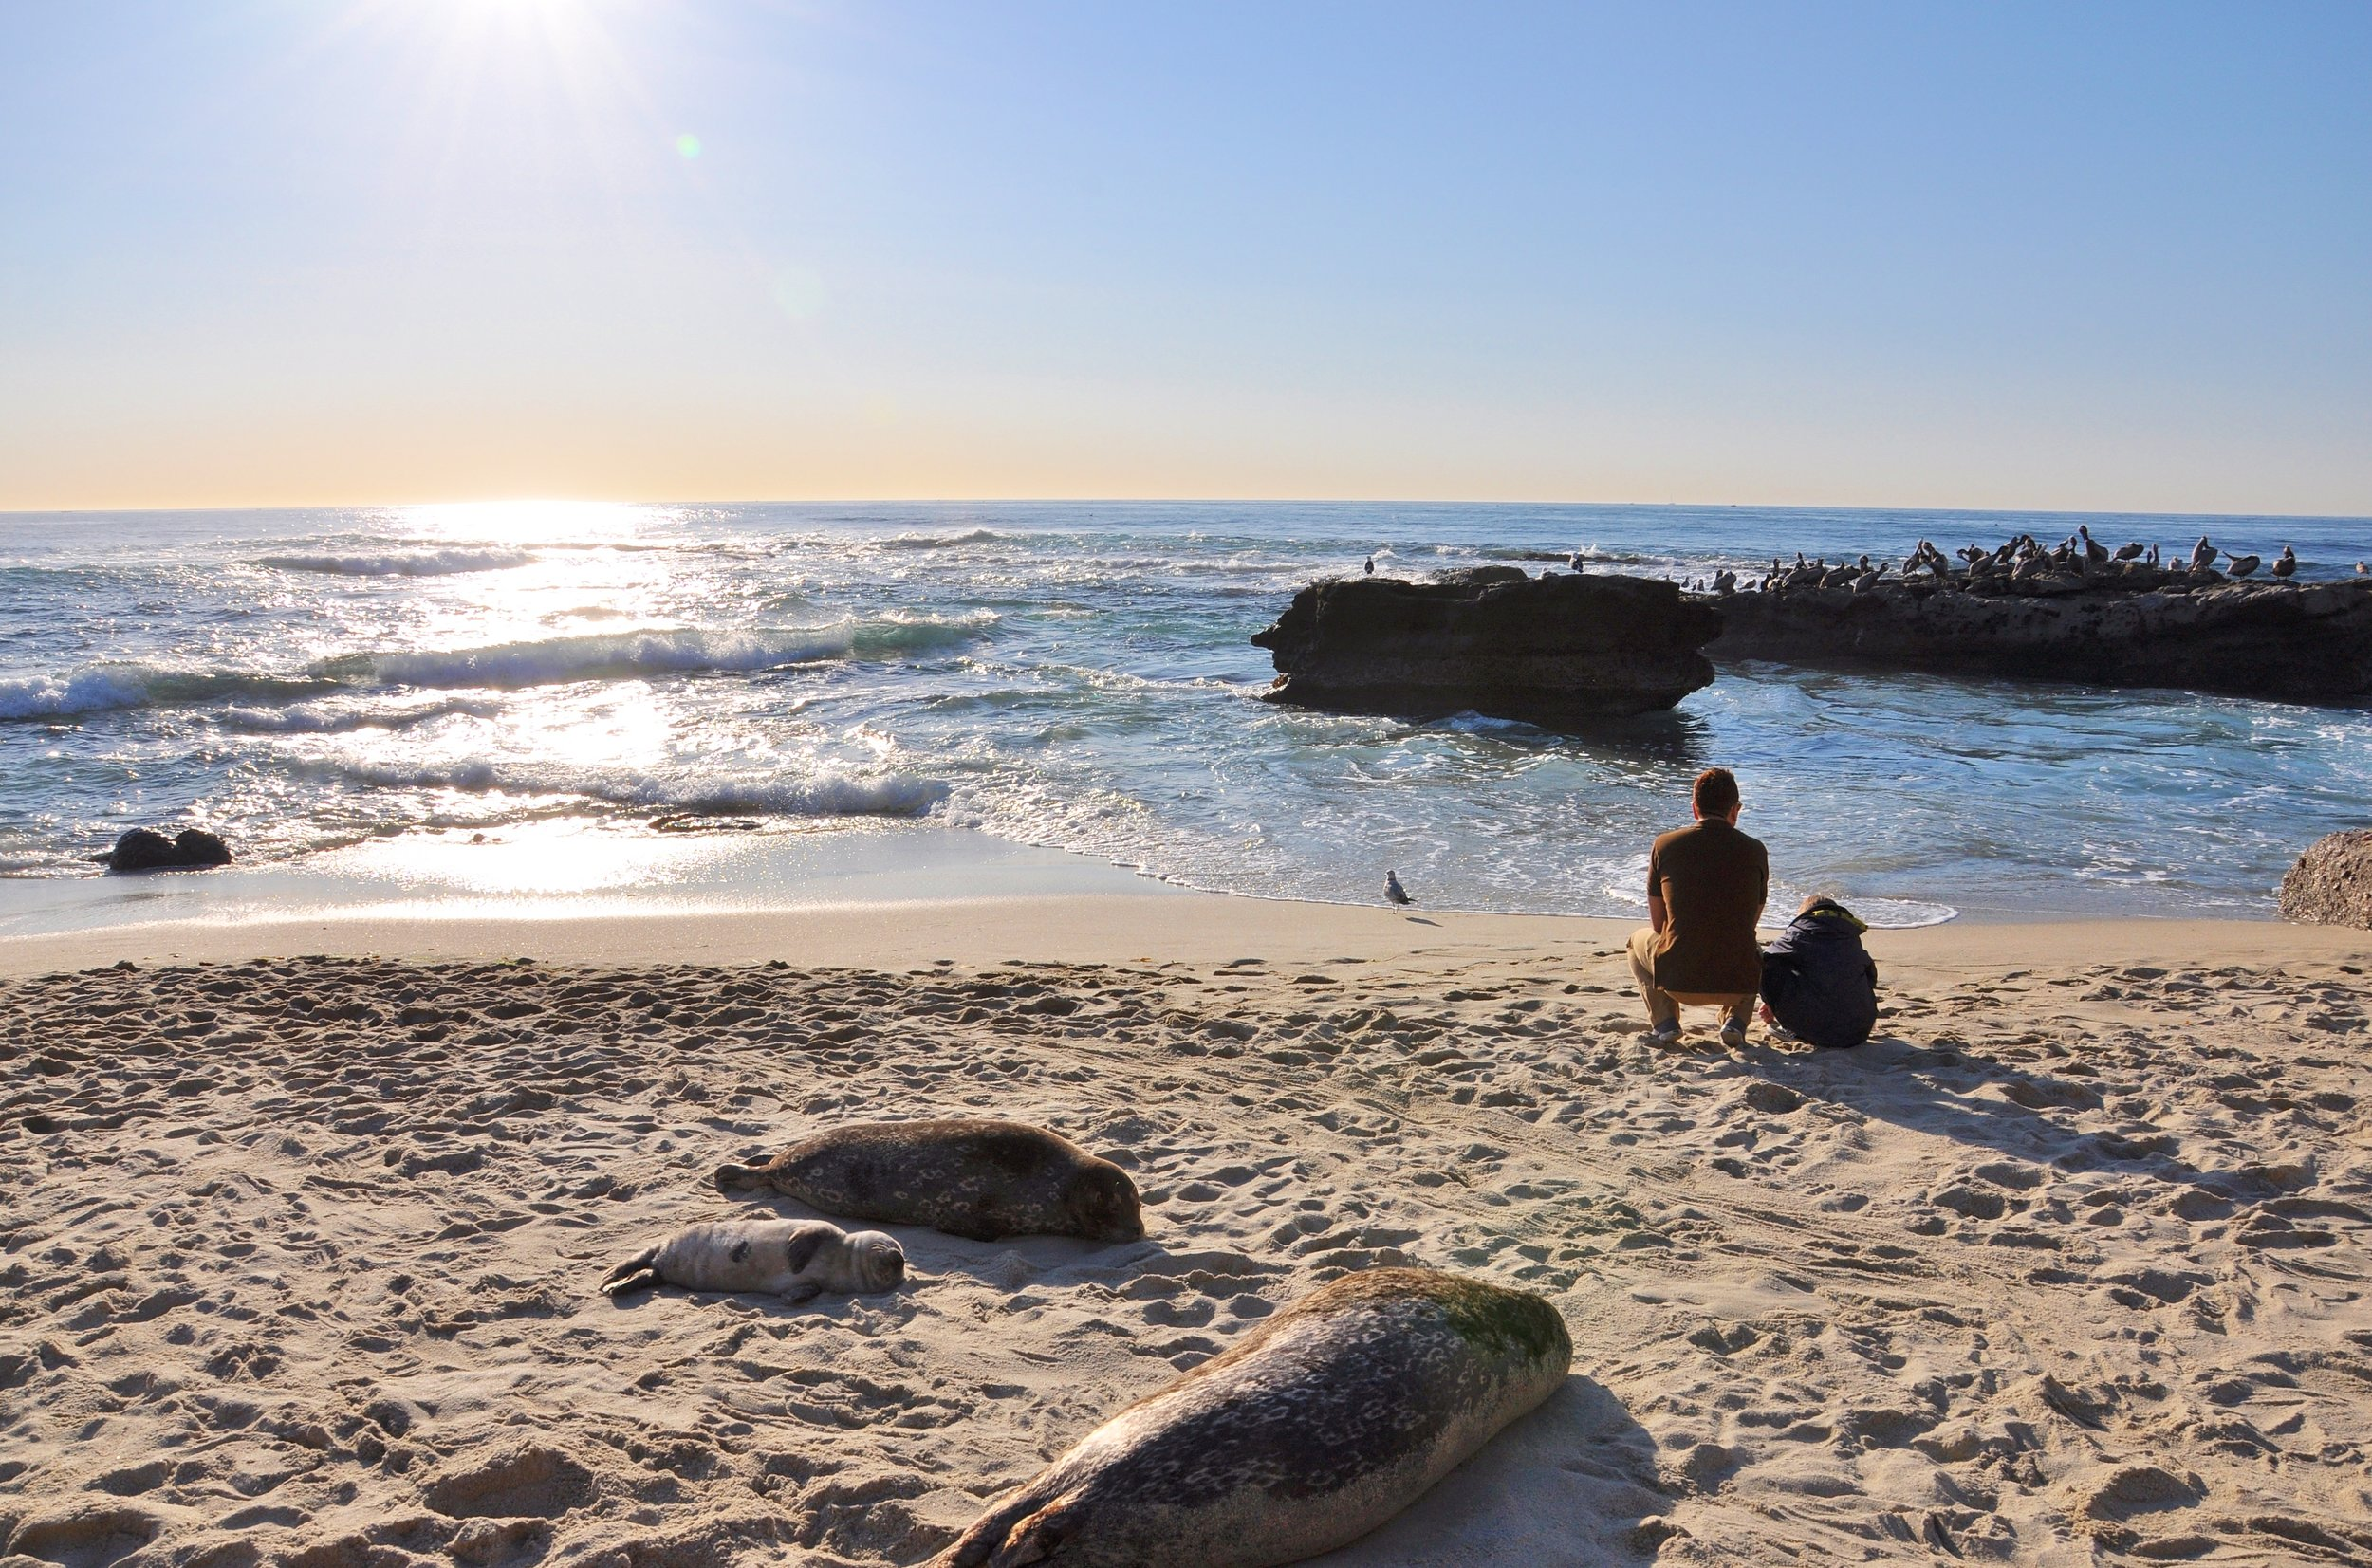 La_Jolla_Coves_Father_and_Son_-Courtesy_Lisa_Field_SanDiego.org.JPG